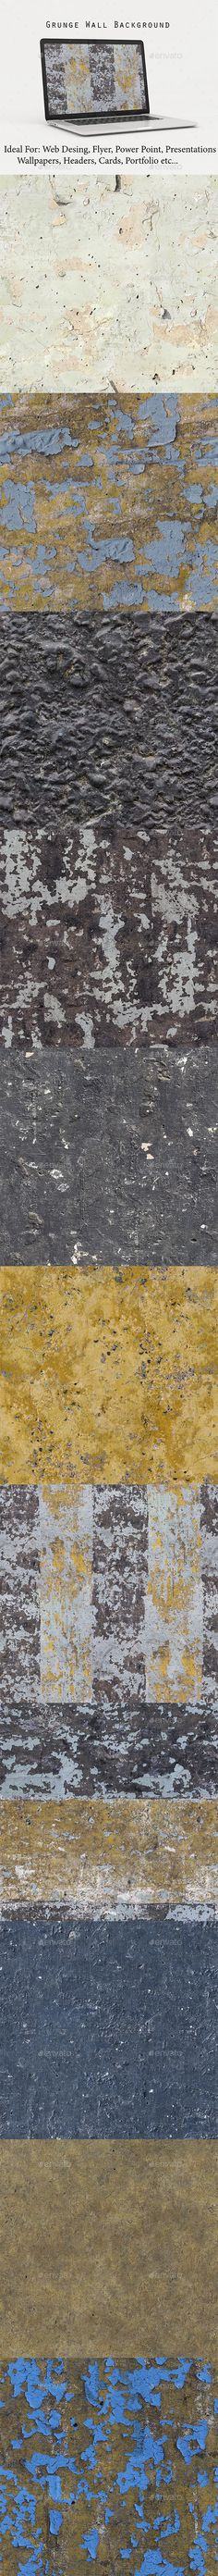 Buy Grunge Wall Background by GraphicsBackground on GraphicRiver. Background Templates, Background Patterns, Background Images Wallpapers, Graphic Design Templates, Backdrops, Grunge, Digital Art, Cement, Abstract Art